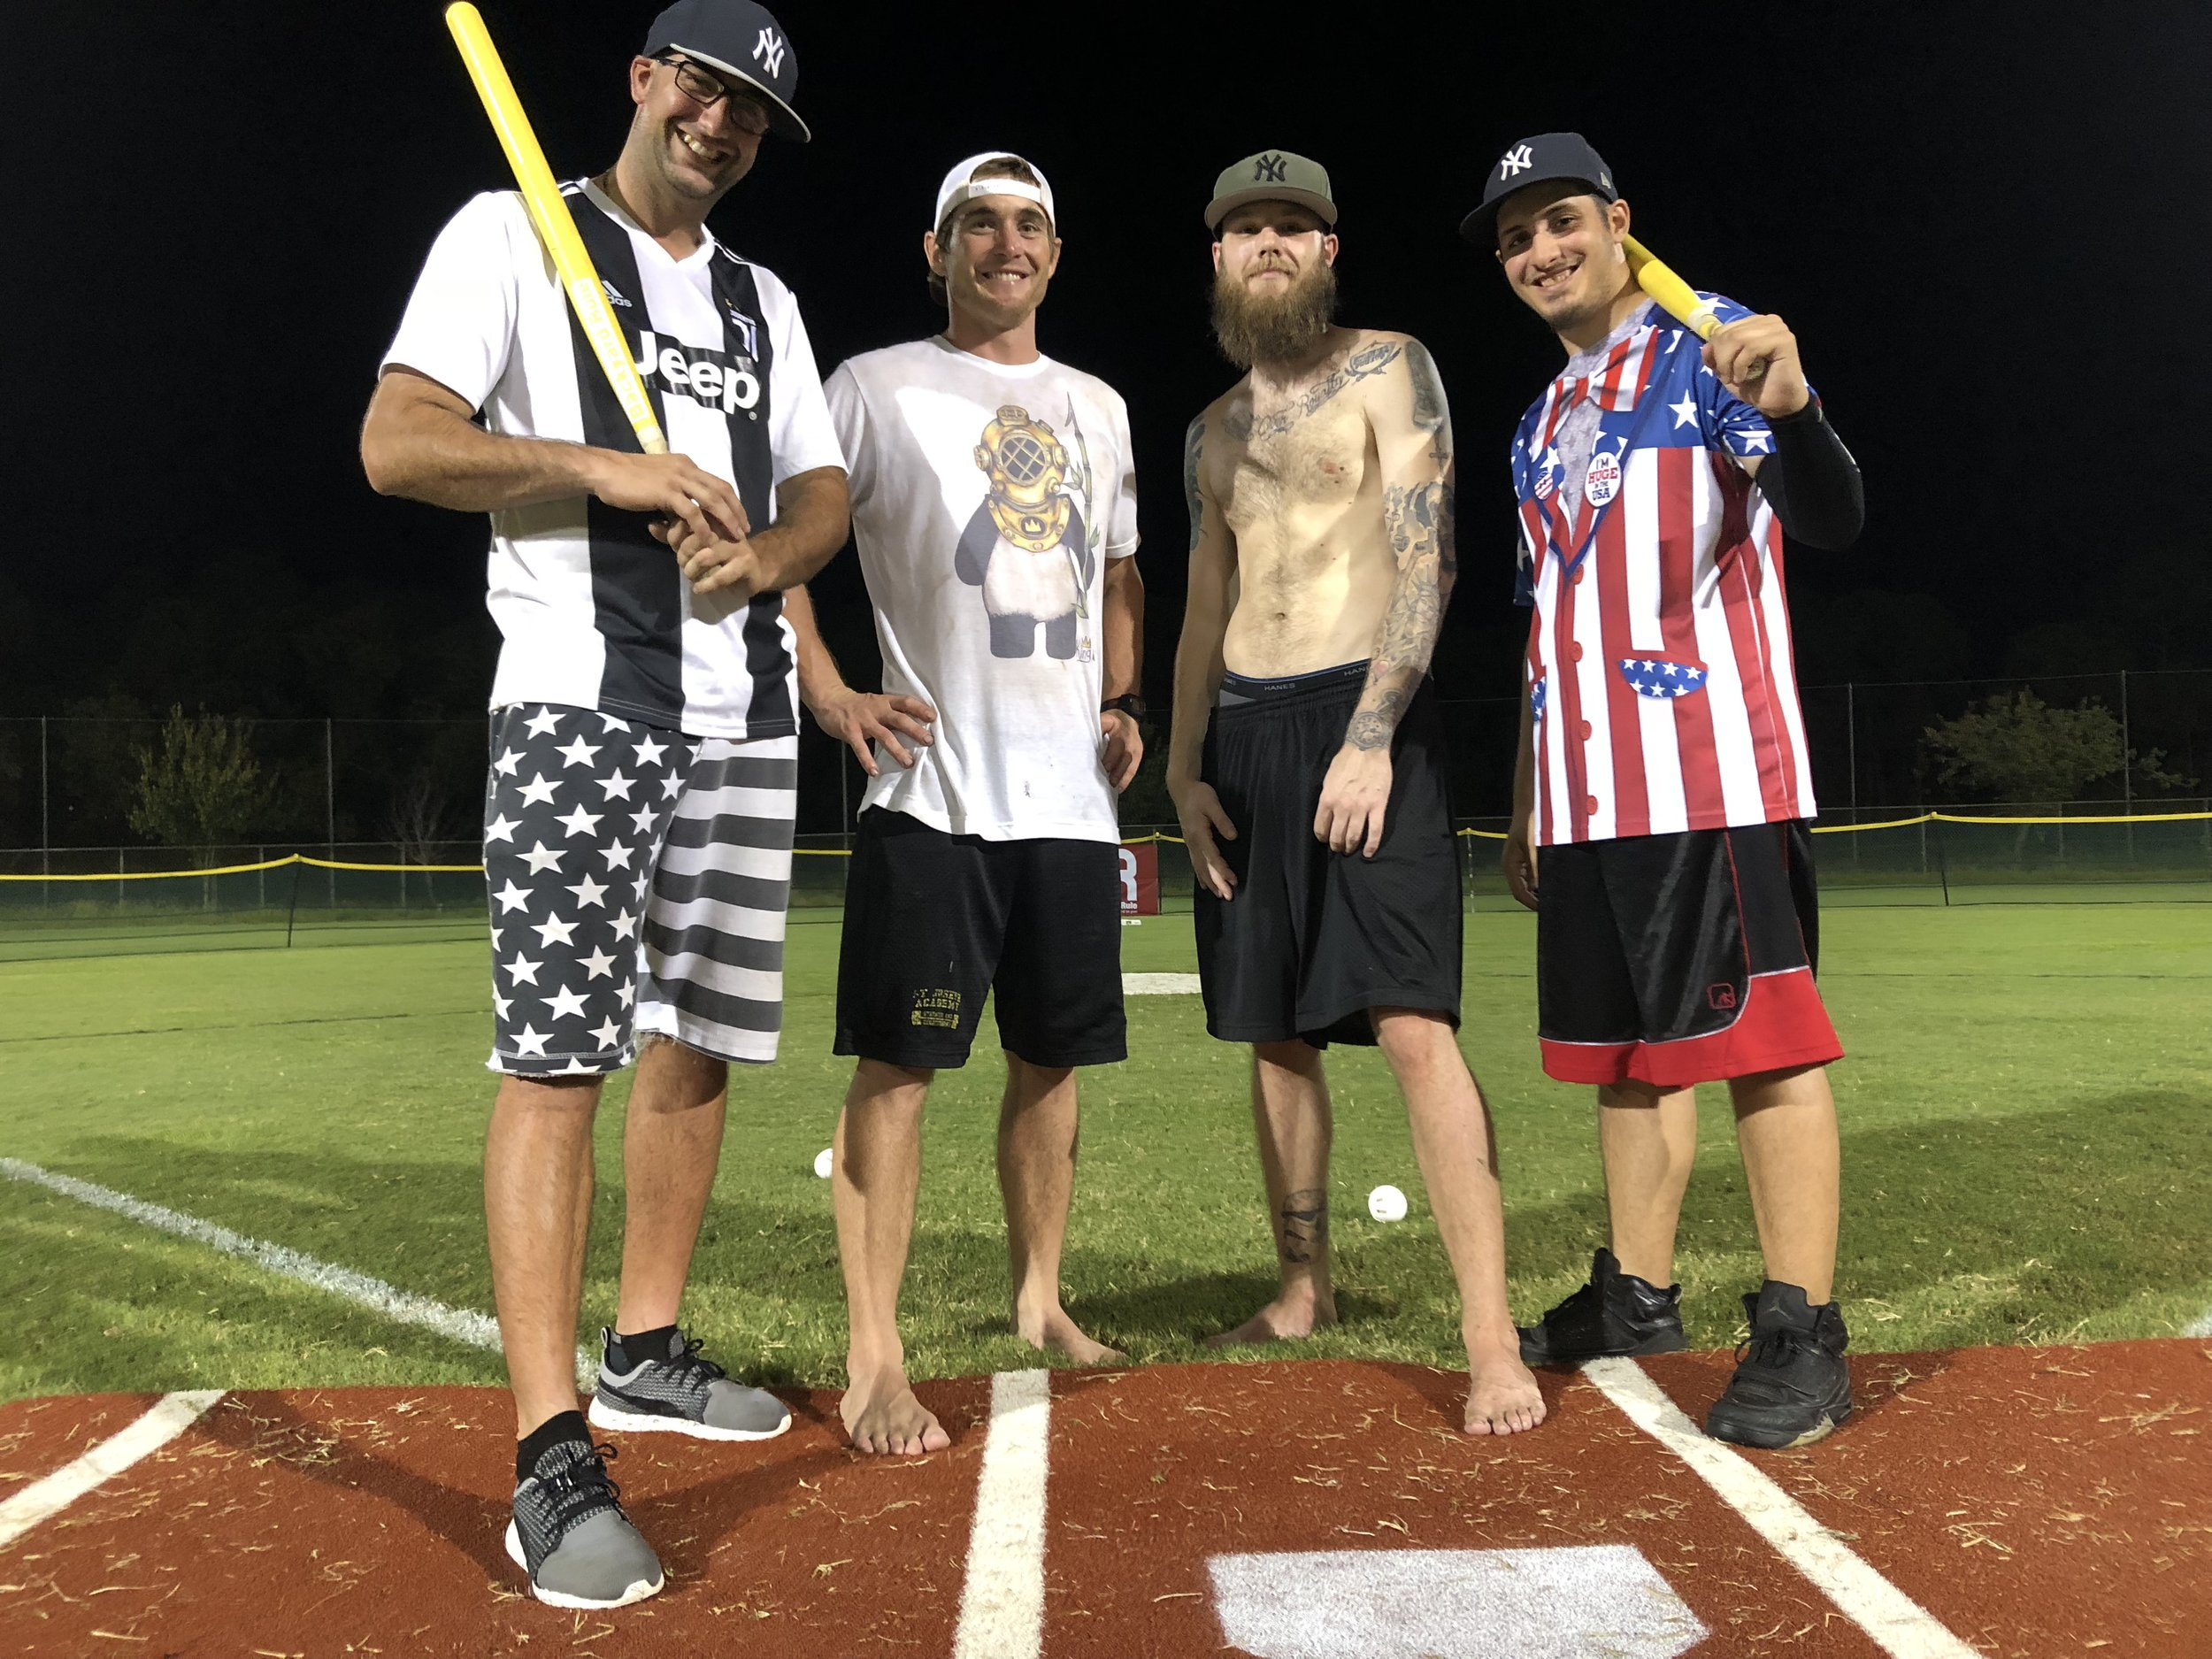 """""""Ball Busters""""(from left to right)Anthony Digiorgio, Nate Fudala, David Haistch, Mike Campanile."""